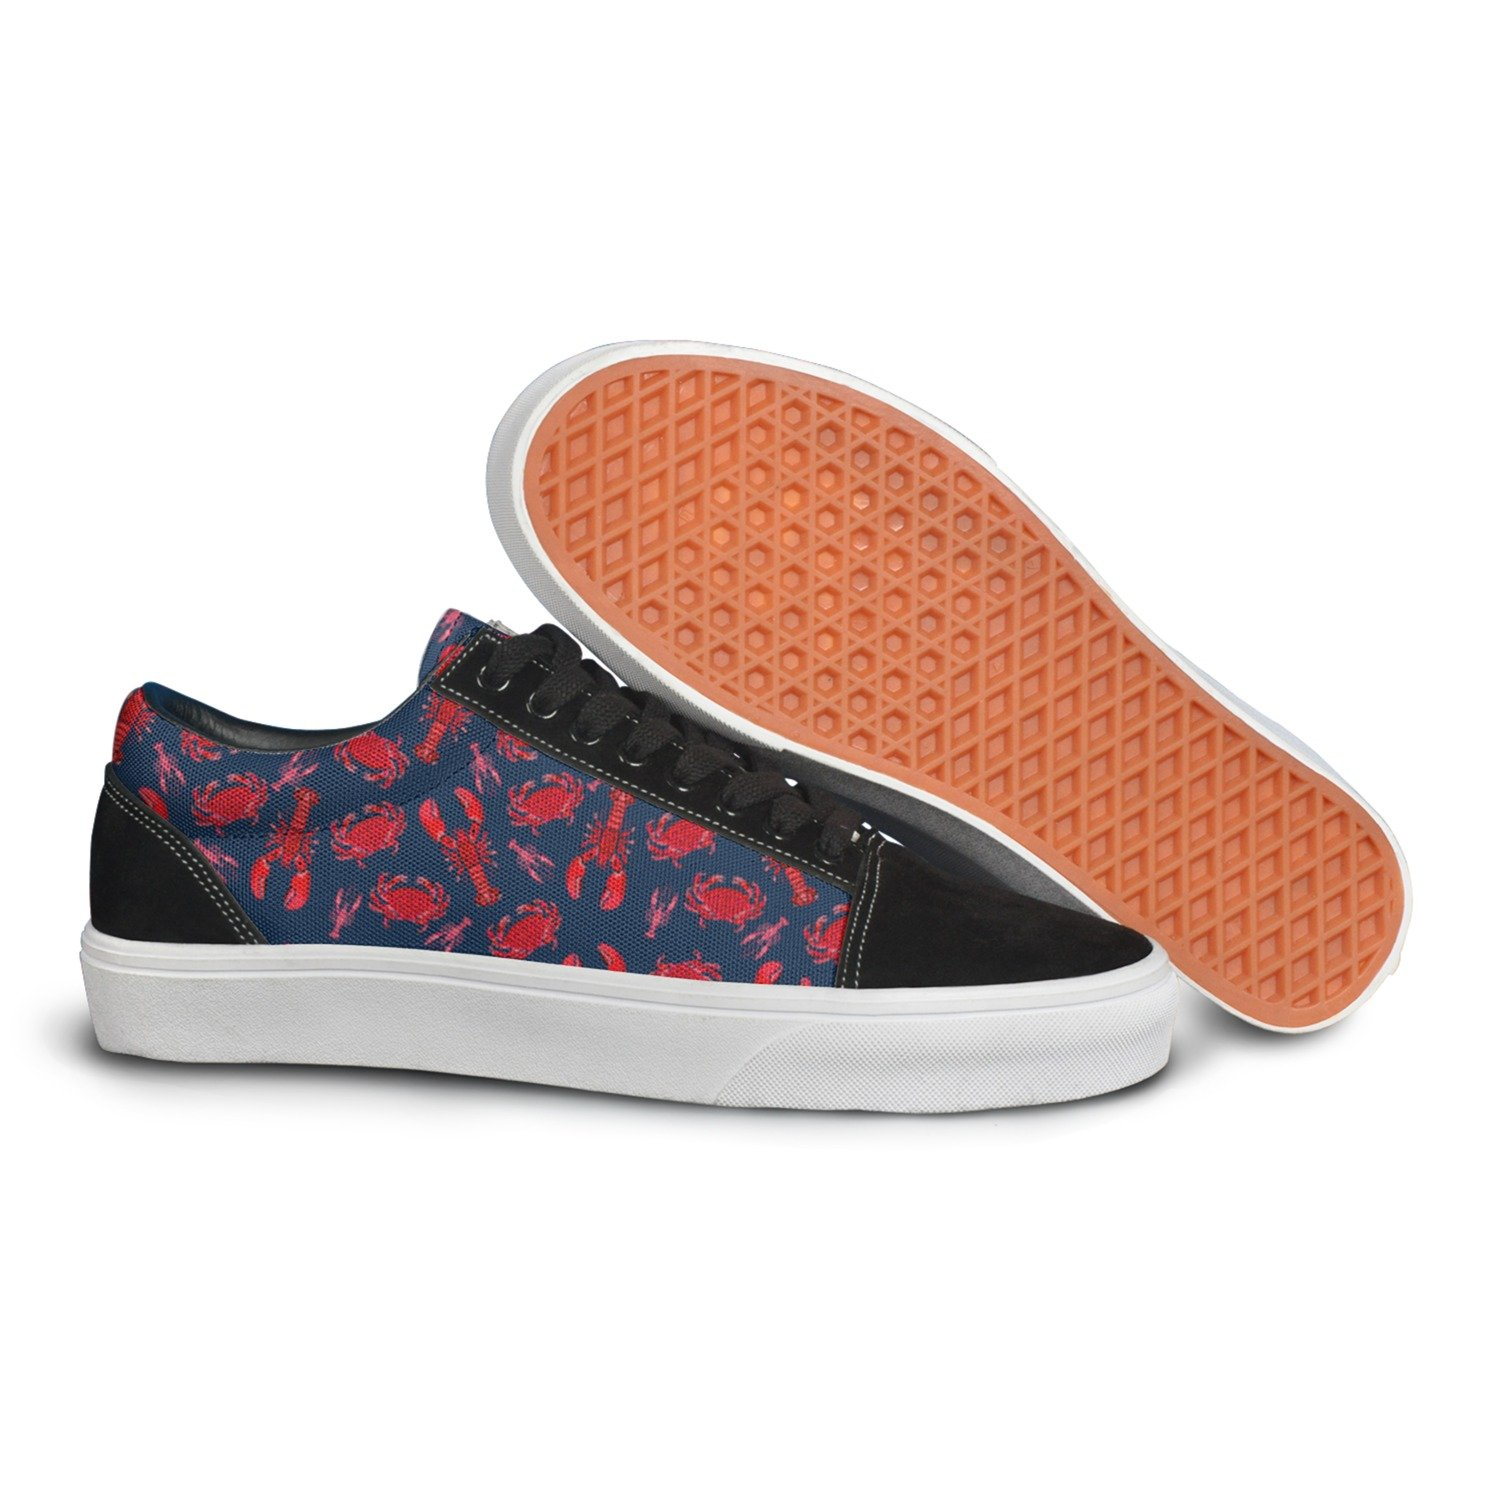 Crab And Lobster Women Casual Shoes Skateboard Customize Fashion Original